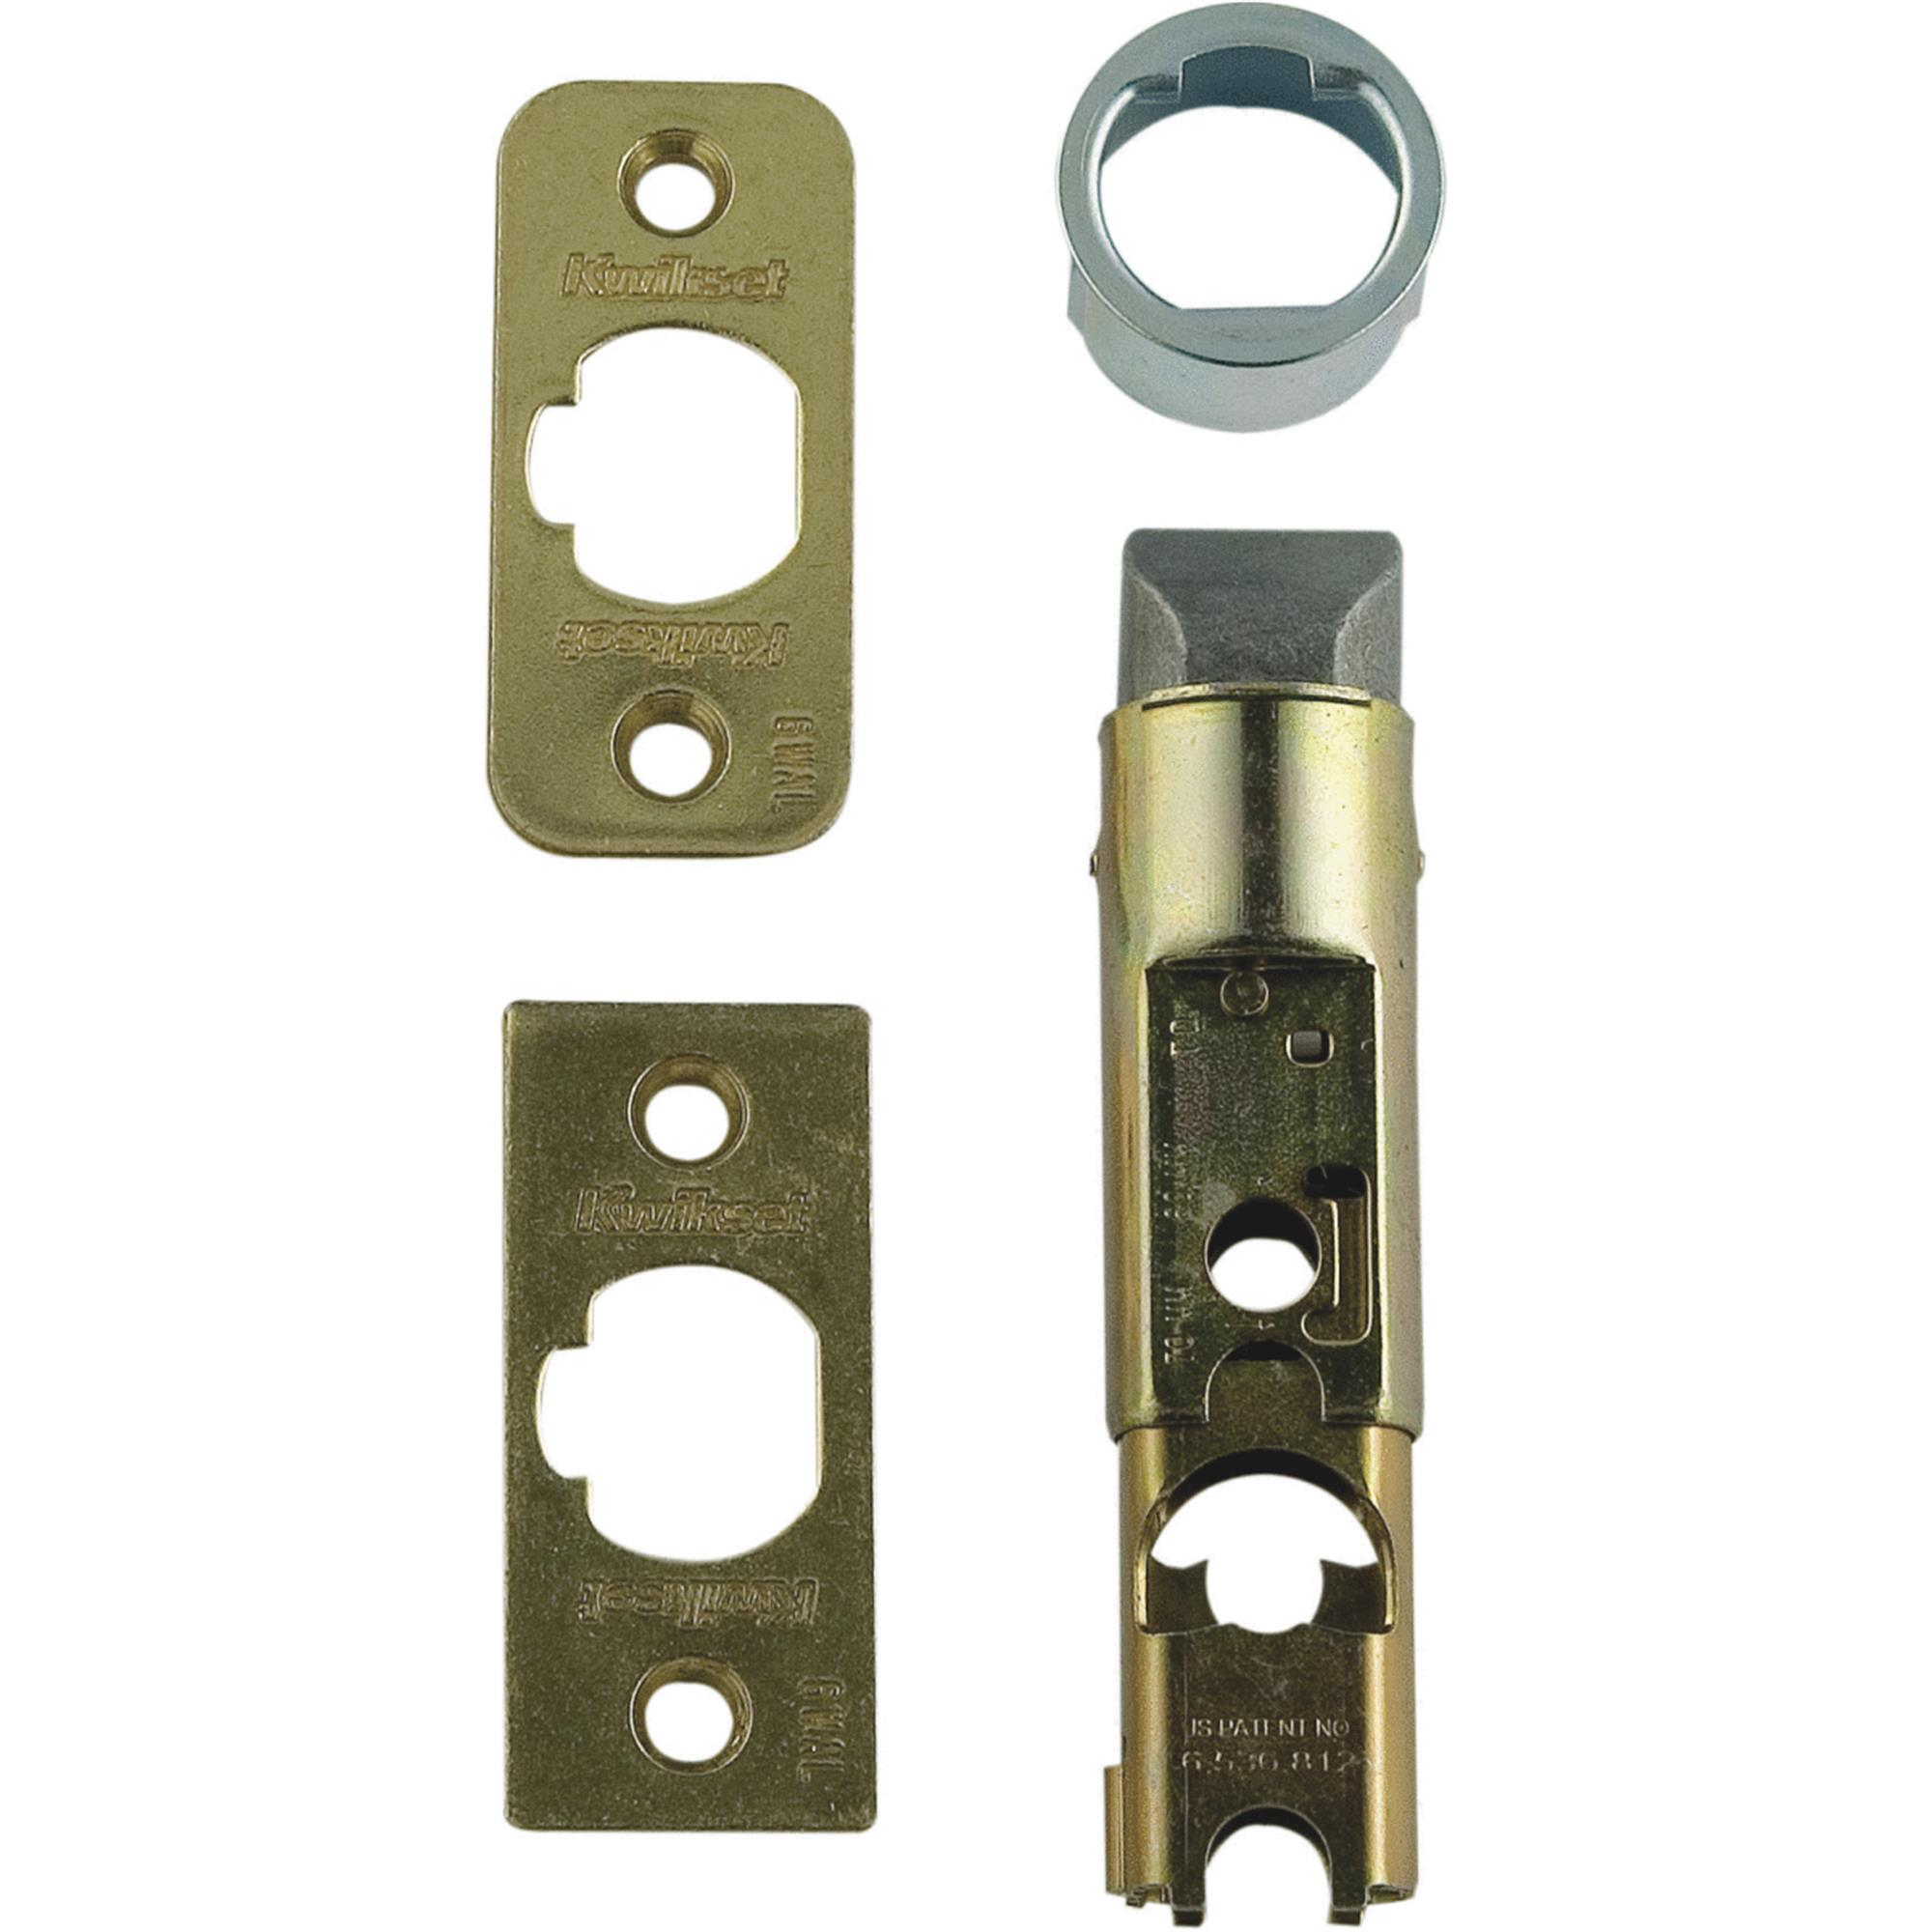 Kwikset 81825-001 Polished Brass Adjustable Entry Door Latch